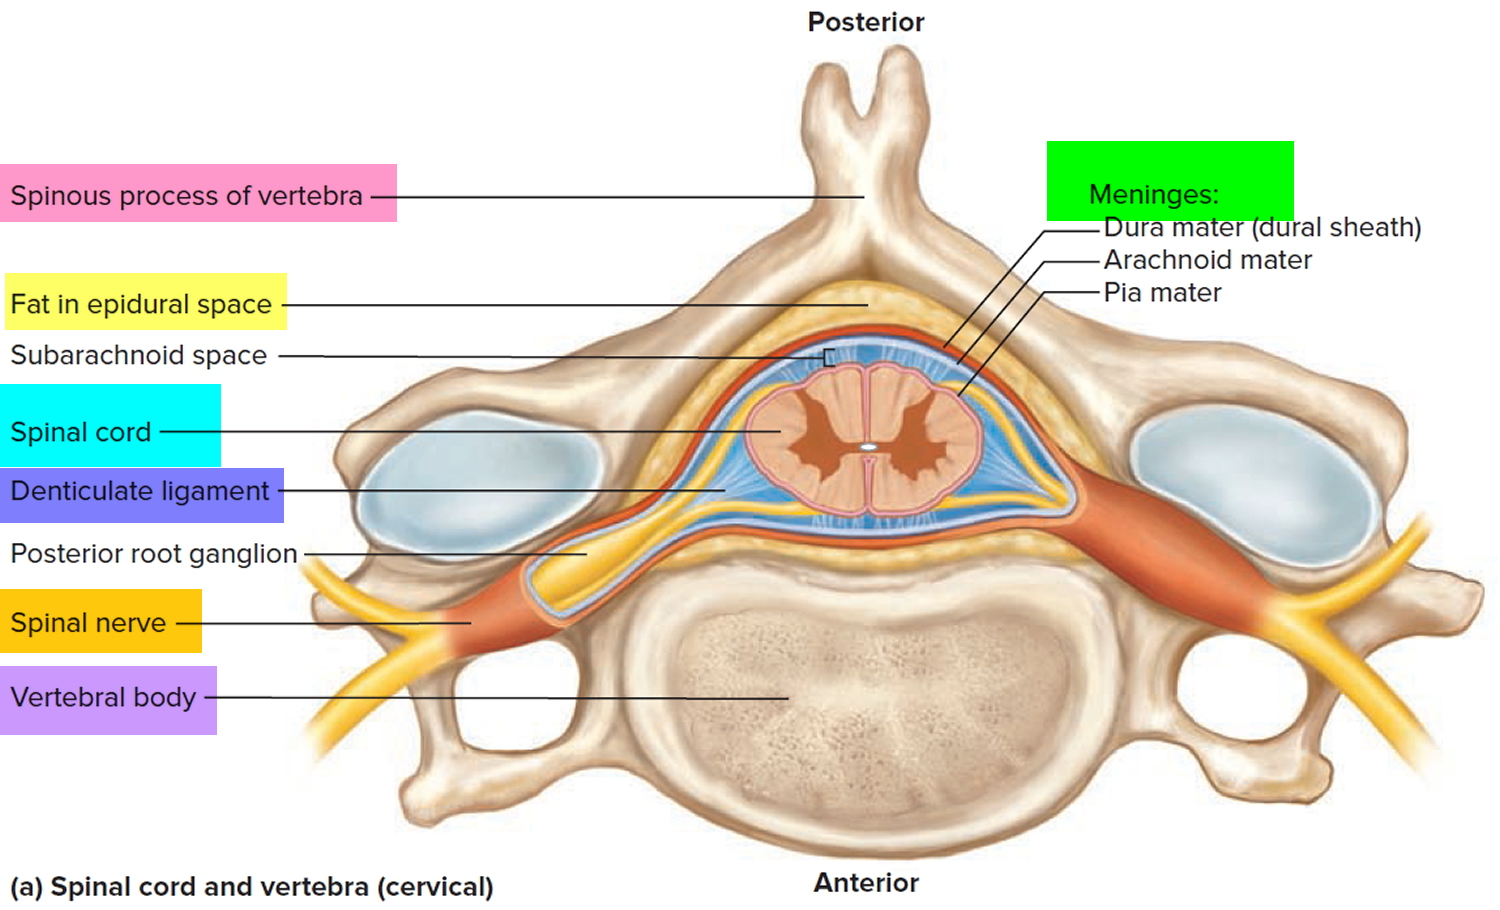 the spinal cord Cerebrospinal fluid (csf) cushions the brain and spinal cord it is a clear, water-like fluid, also called spinal fluid, found between the arachnoid and pia mater it is a clear, water-like fluid, also called spinal fluid, found between the arachnoid and pia mater.